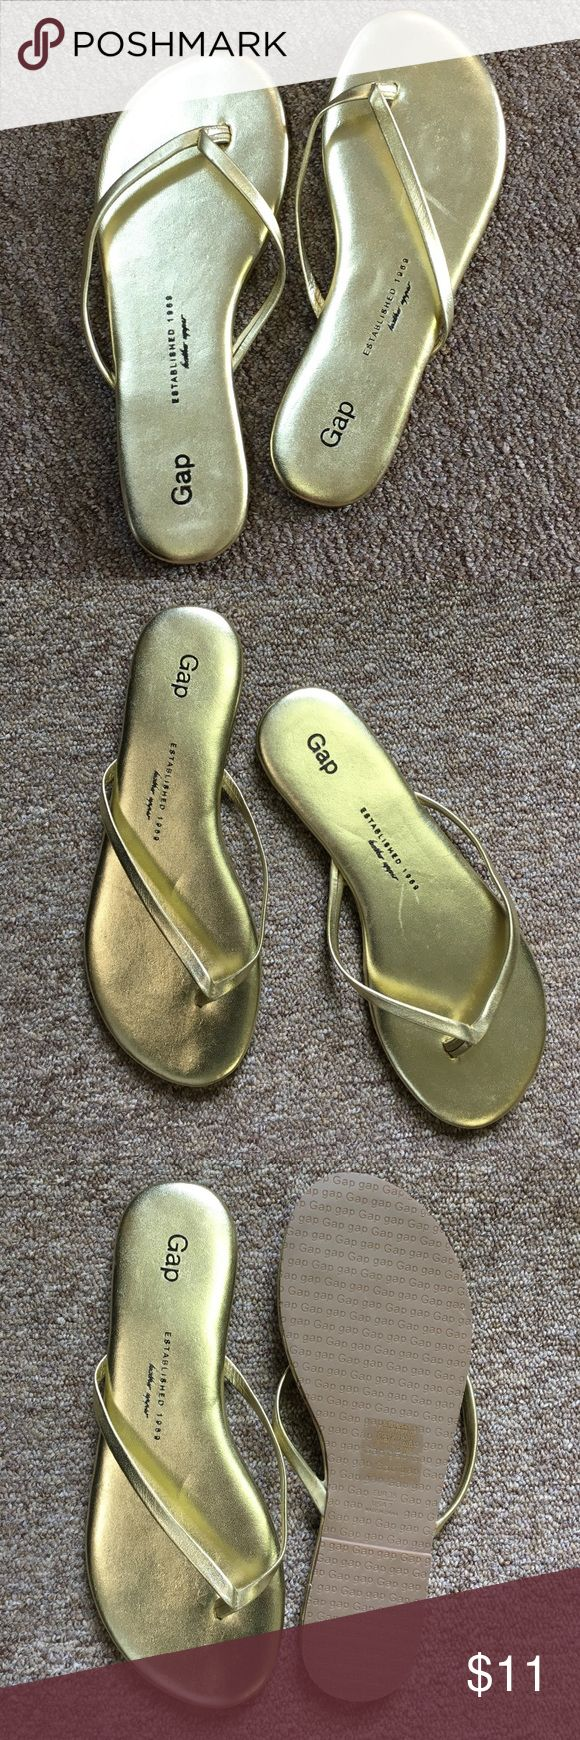 """GAP Gold Leather Flip Flops Sandals Size 7 This flip flop sandal from GAP is shimmery gold beautiful! Looks like they may have been bumped around a little in someone's closet, but otherwise new looking and unworn (:   Size on shoe says Euro 38 / US 7, fits more like 7.5-8.  Measures 9 5/8"""" at longest, heel to toe. GAP Shoes Sandals"""